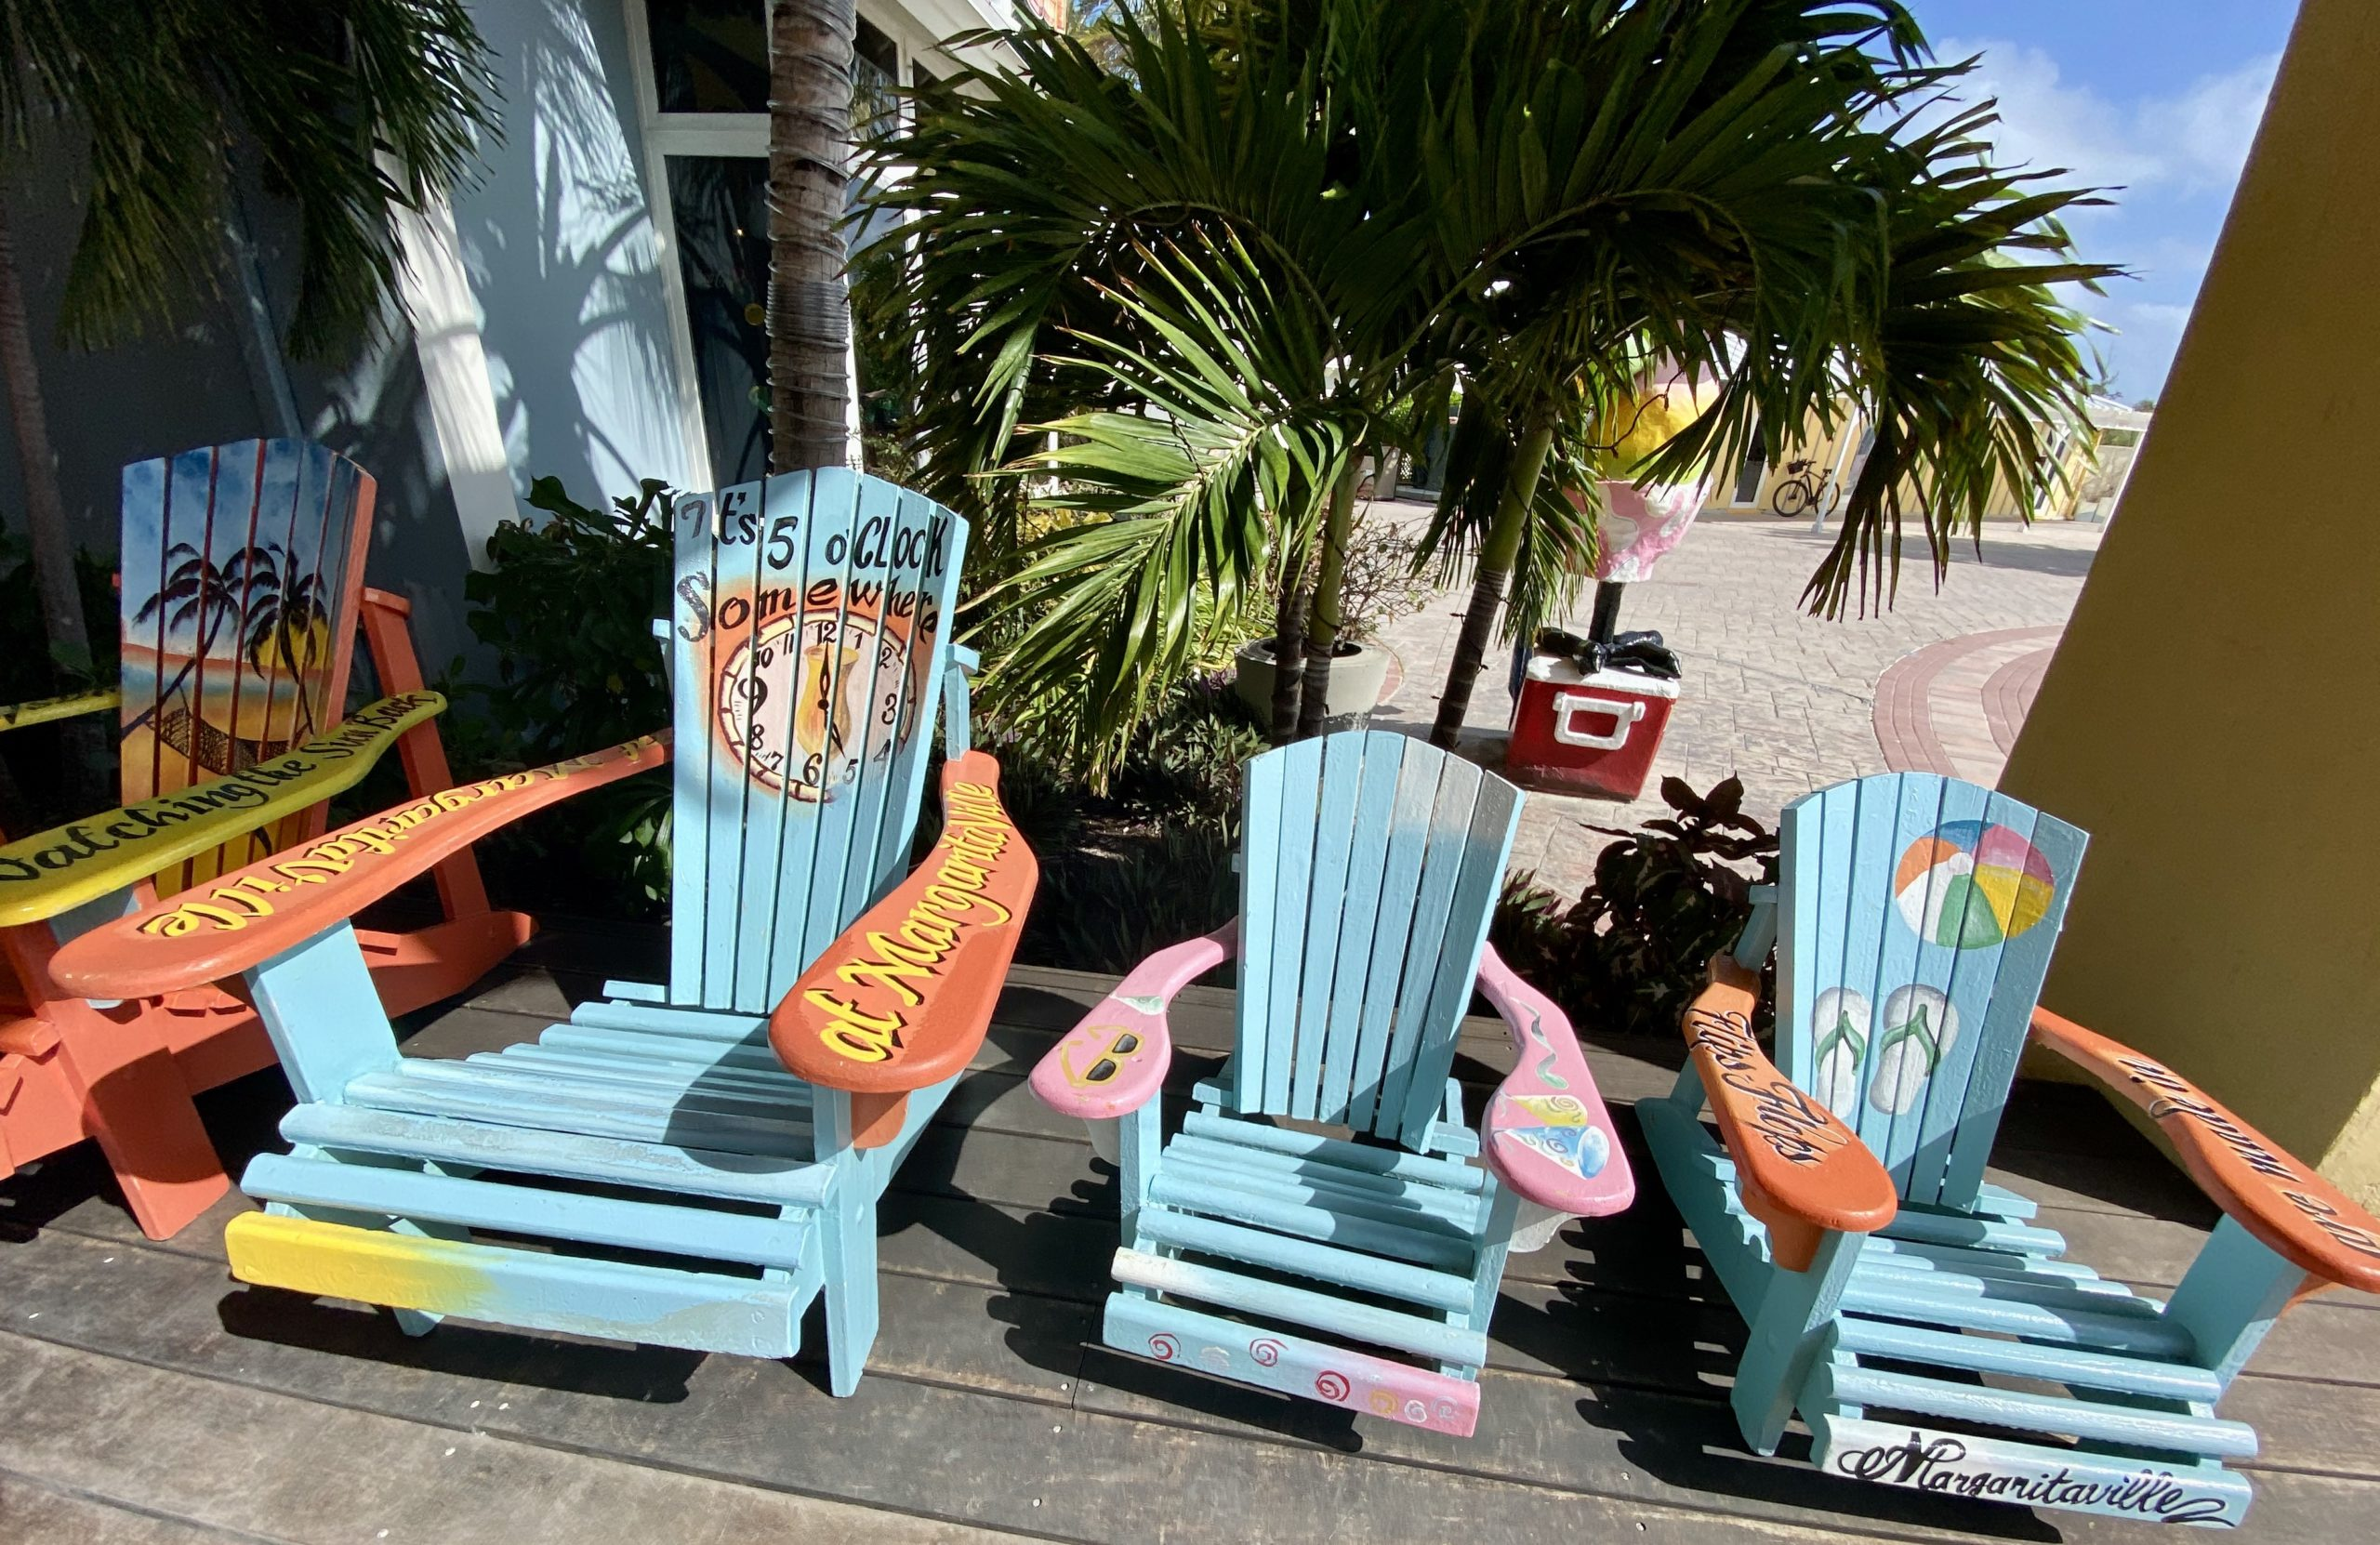 Grand Turk margaritaville is a stop on one of the best Caribbean cruises.